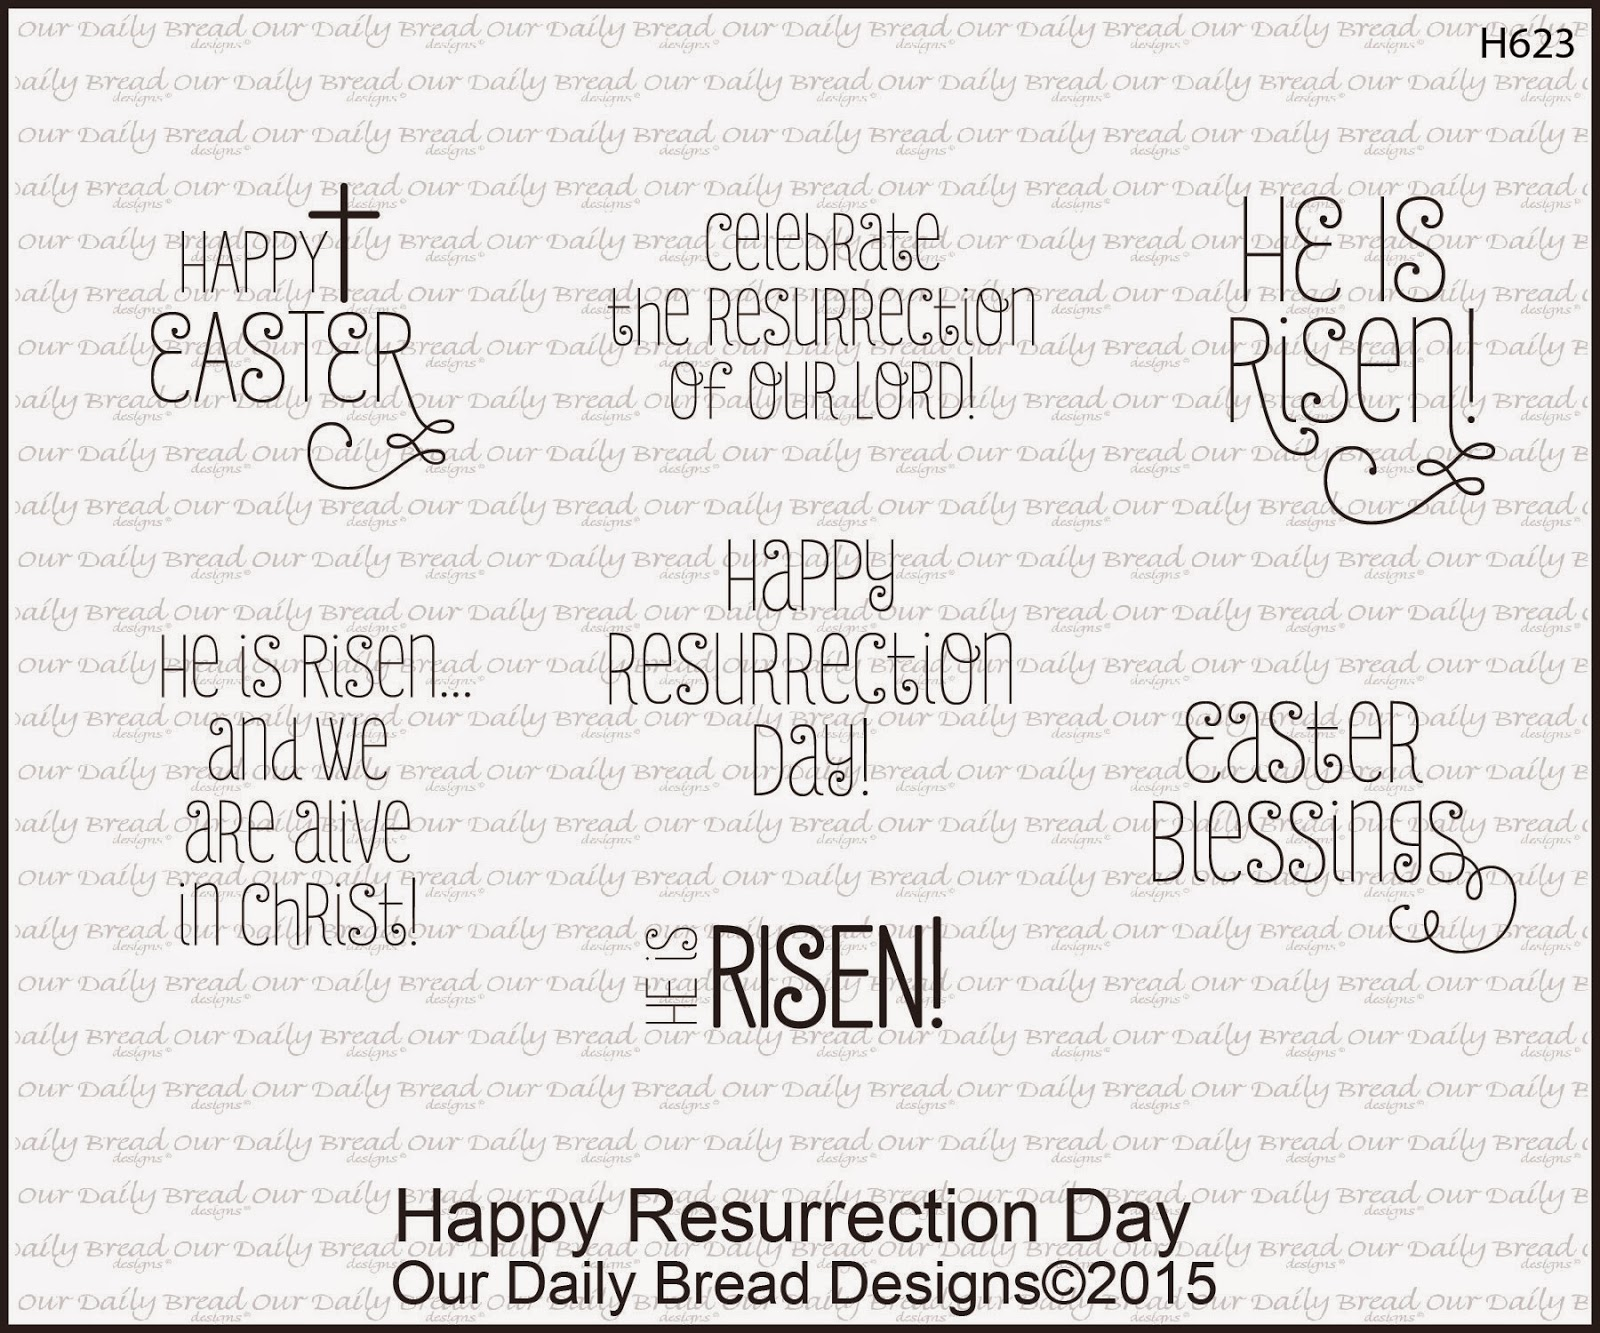 ODBD Happy Resurrection Day